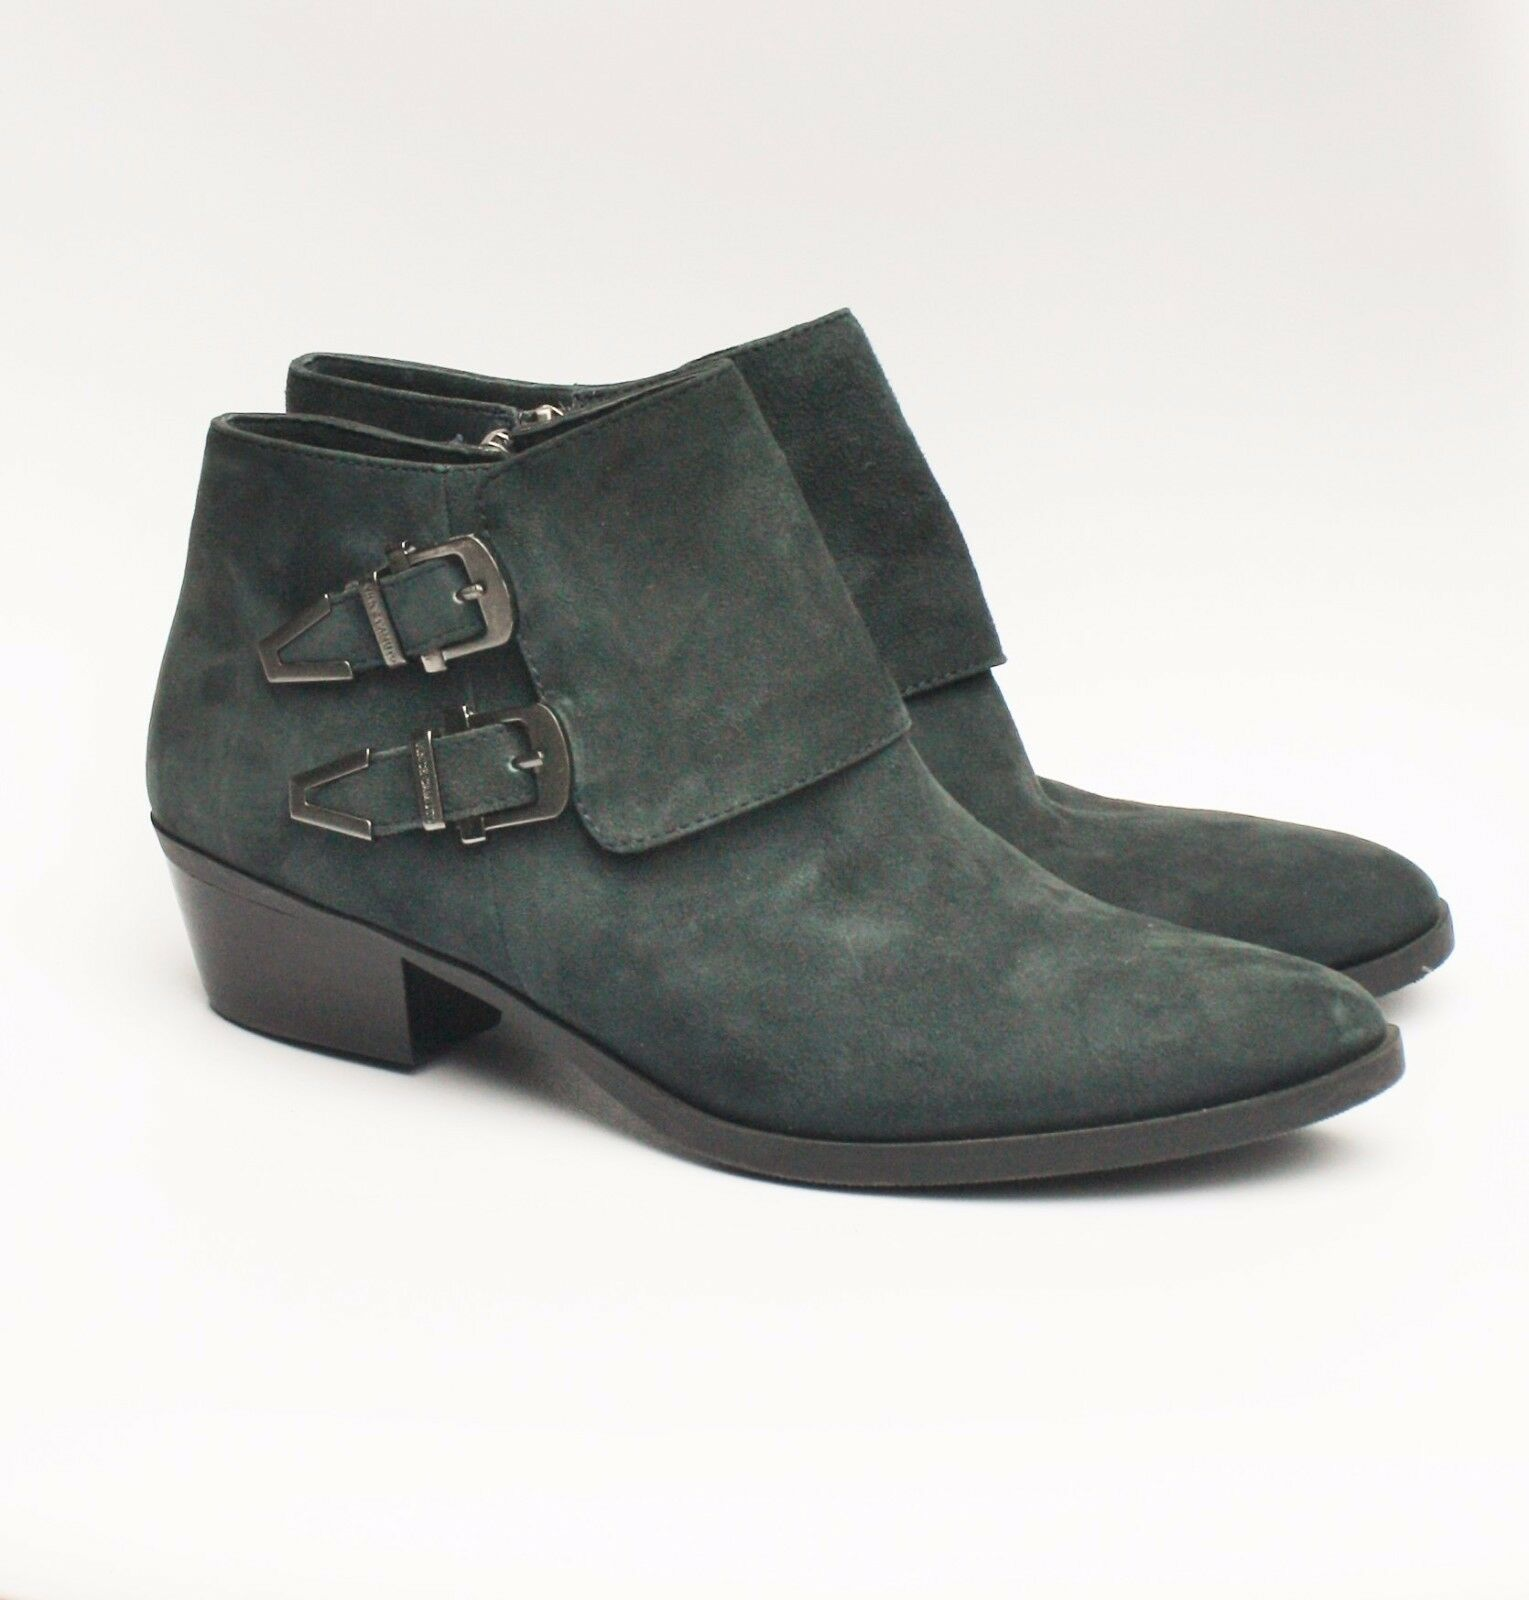 VINCE CAMUTO TRAPEEZ BOOTIES 8 Gray Suede Buckle Biker Moto Ankle Boots Shoes